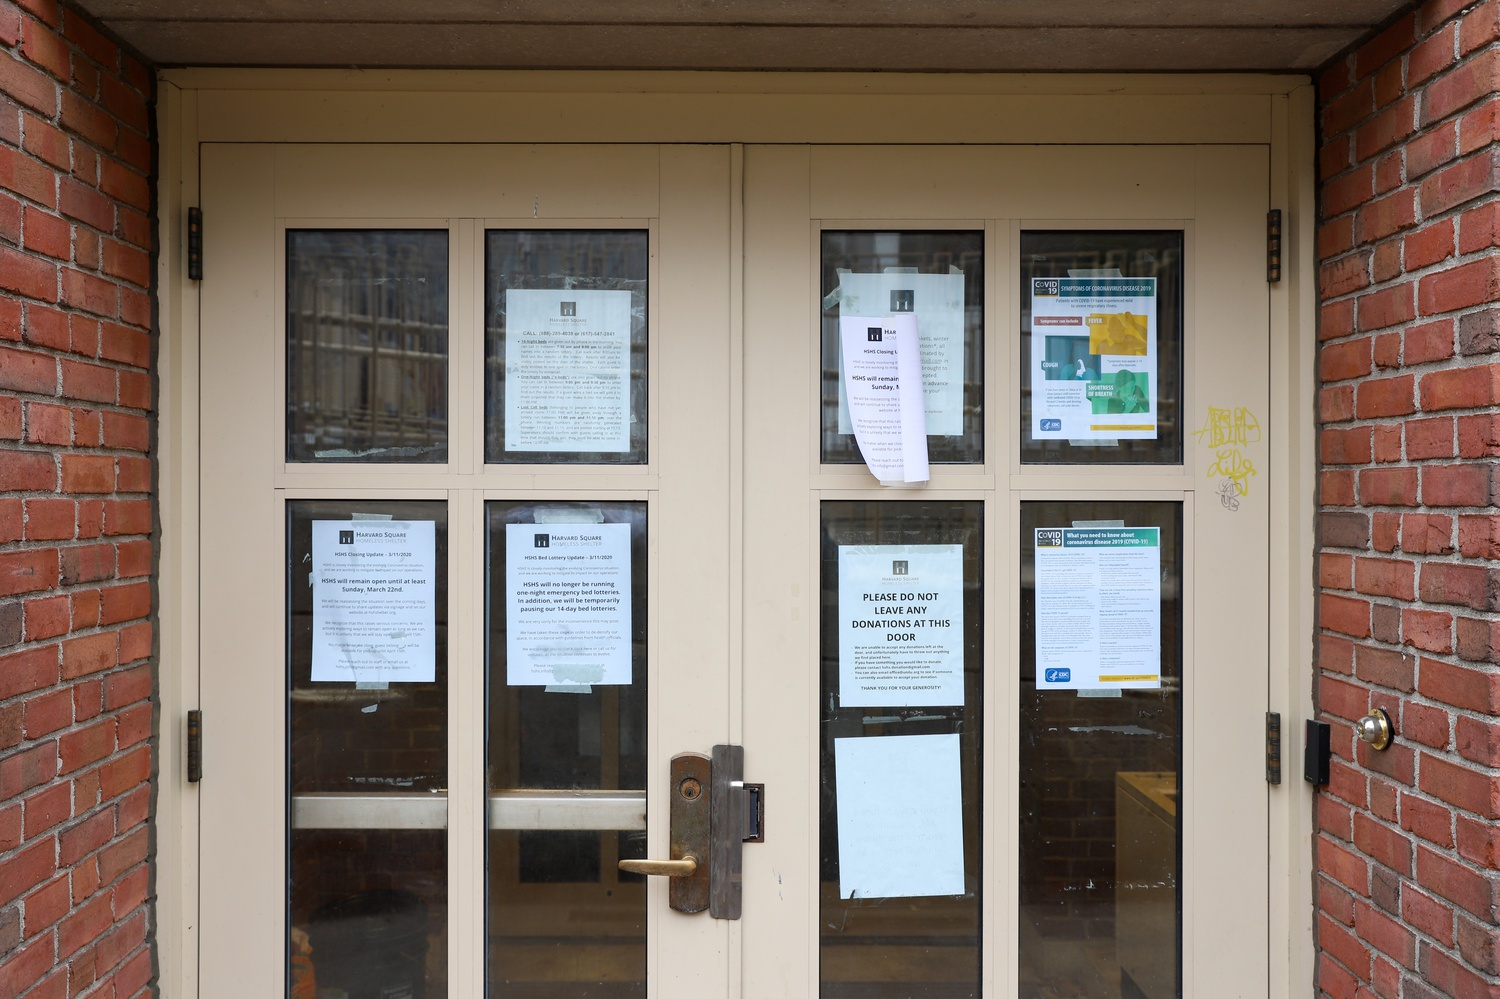 After remaining open throughout Spring Break, Harvard Square Homeless Shelter is closing as a result of the novel coronavirus.